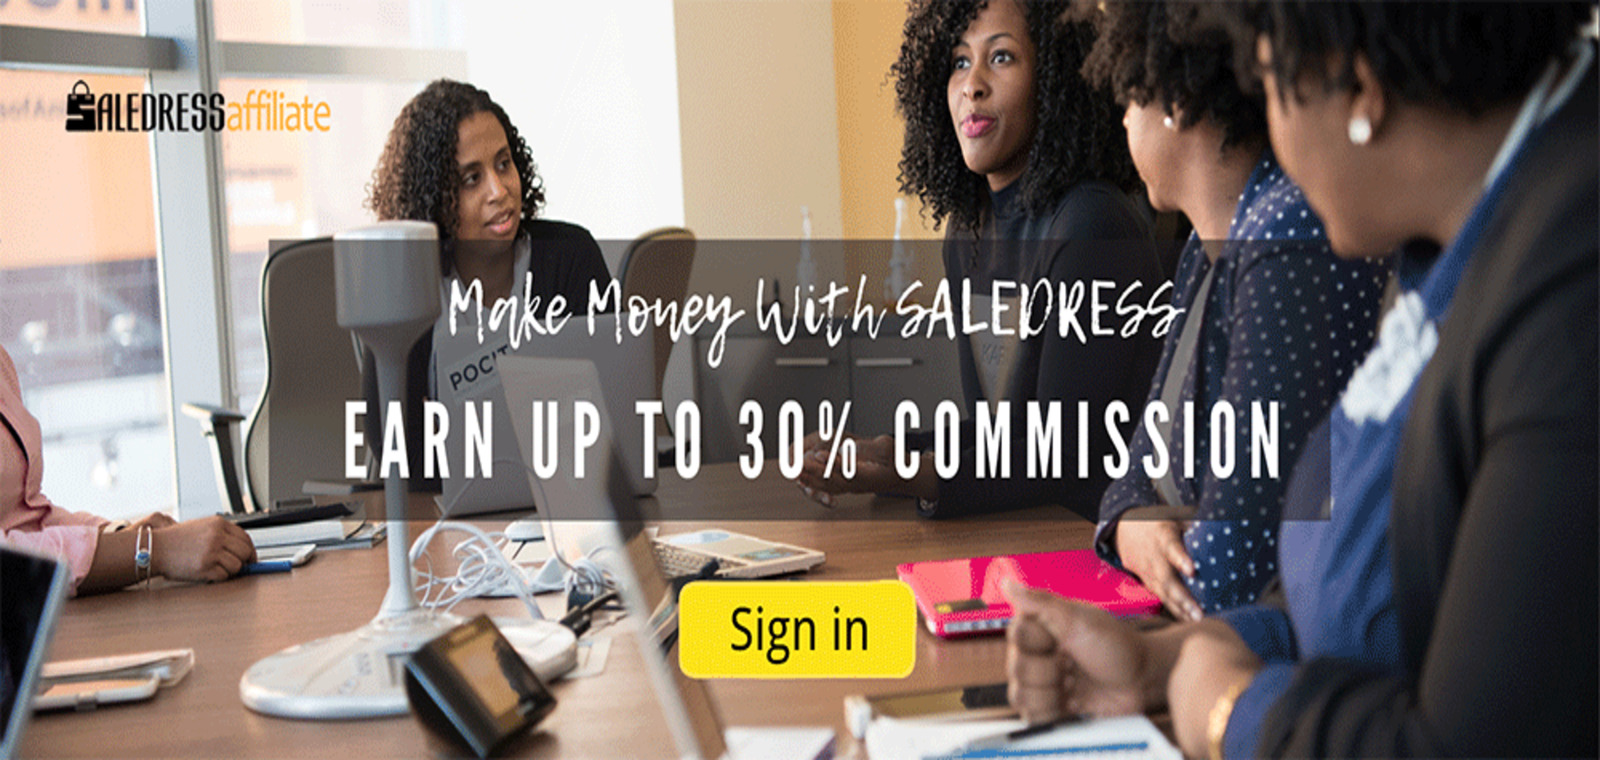 Saledress: The best funnels to reach potential customers